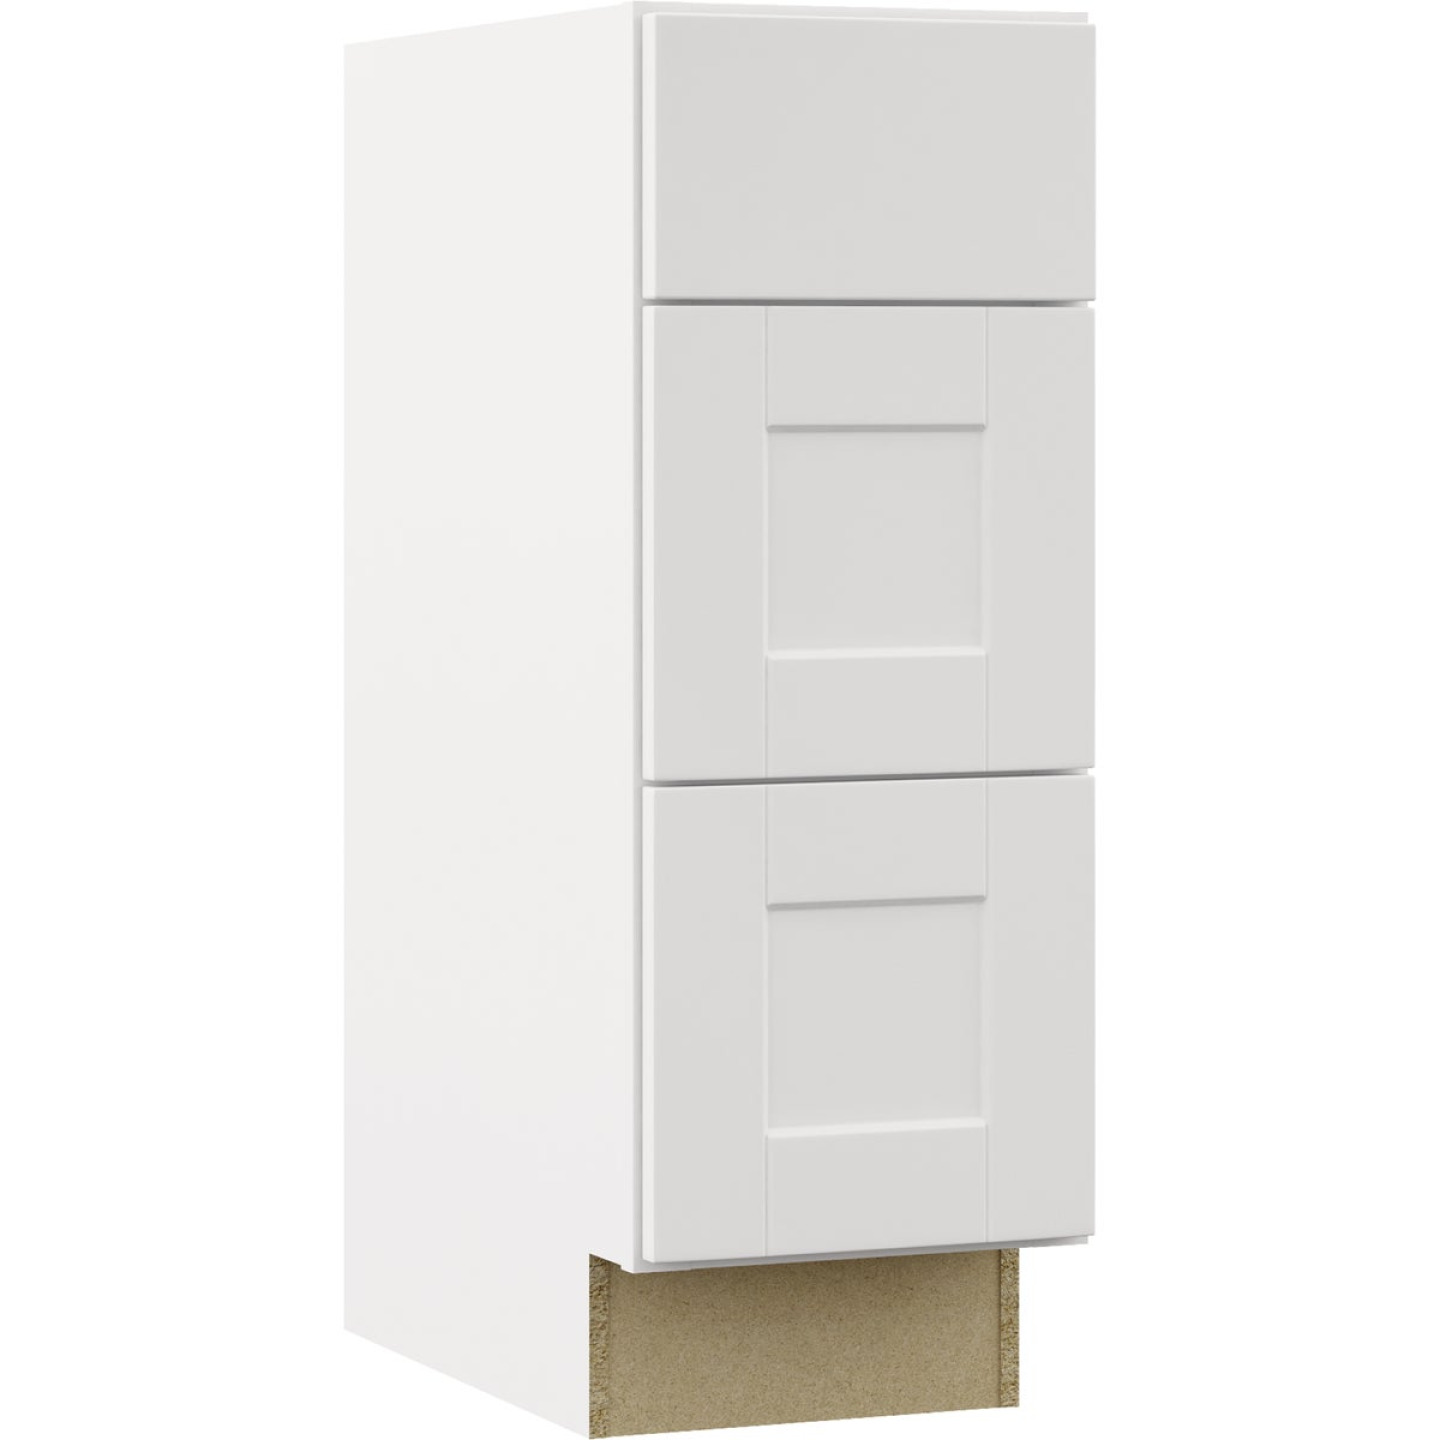 Continental Cabinets Andover Shaker 12 In. W x 34-1/2 In. H x 21 In. D White Drawer Vanity Base Image 1